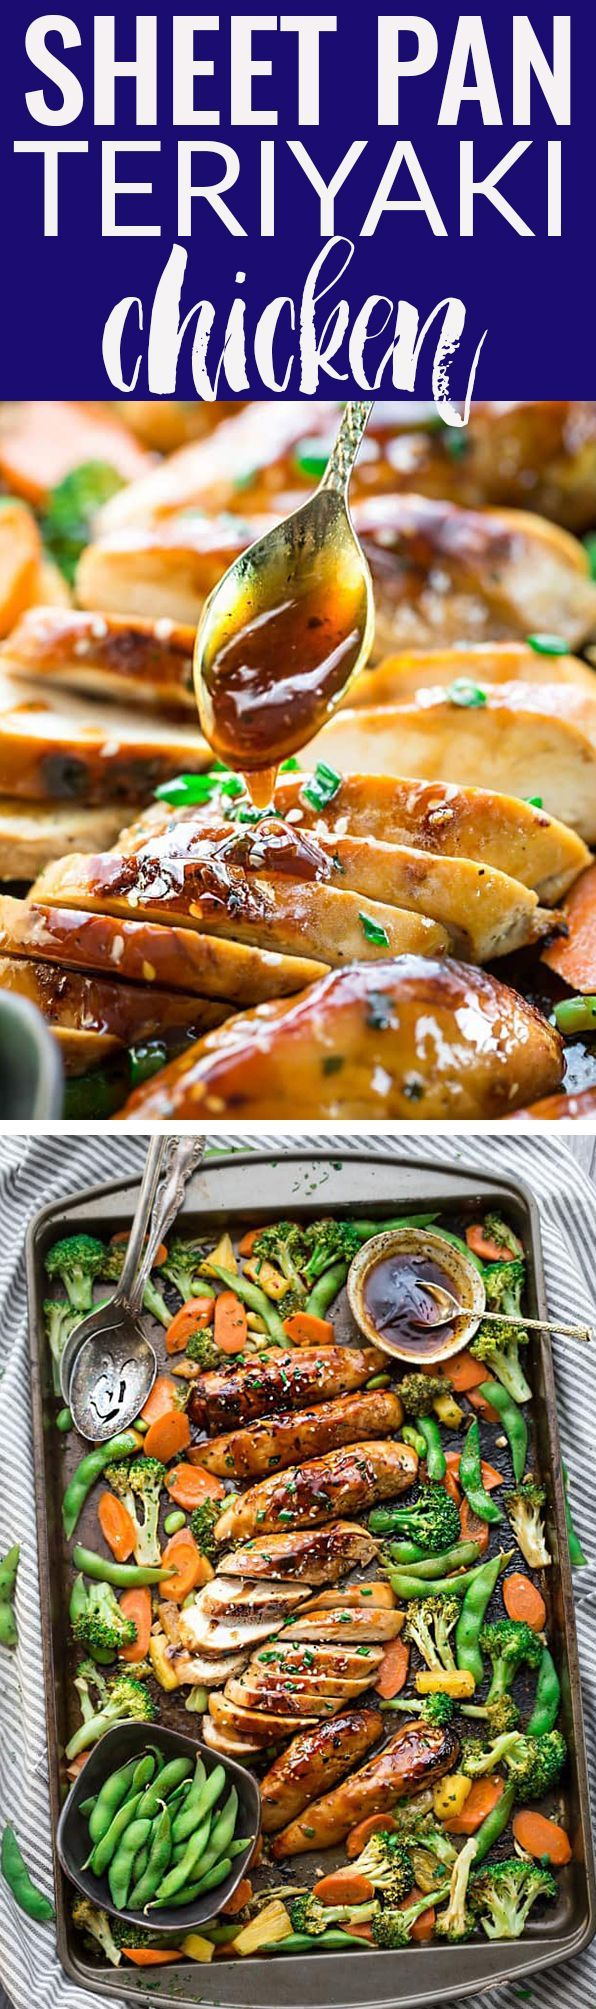 One Sheet Pan Teriyaki Chicken makes the perfect easy weeknight meal that is even better than your local Japanese takeout restaurant! Best of all, it's full of authentic flavors and super easy to make with just 10 minutes of prep time. Skip the takeout menu! This is so much better and healthier! Weekly meal prep or leftovers are great for lunch bowls or lunchboxes for work or school. #takeoutfakeout #lunchbox #sheetpan #mealprep #teriyaki #chicken